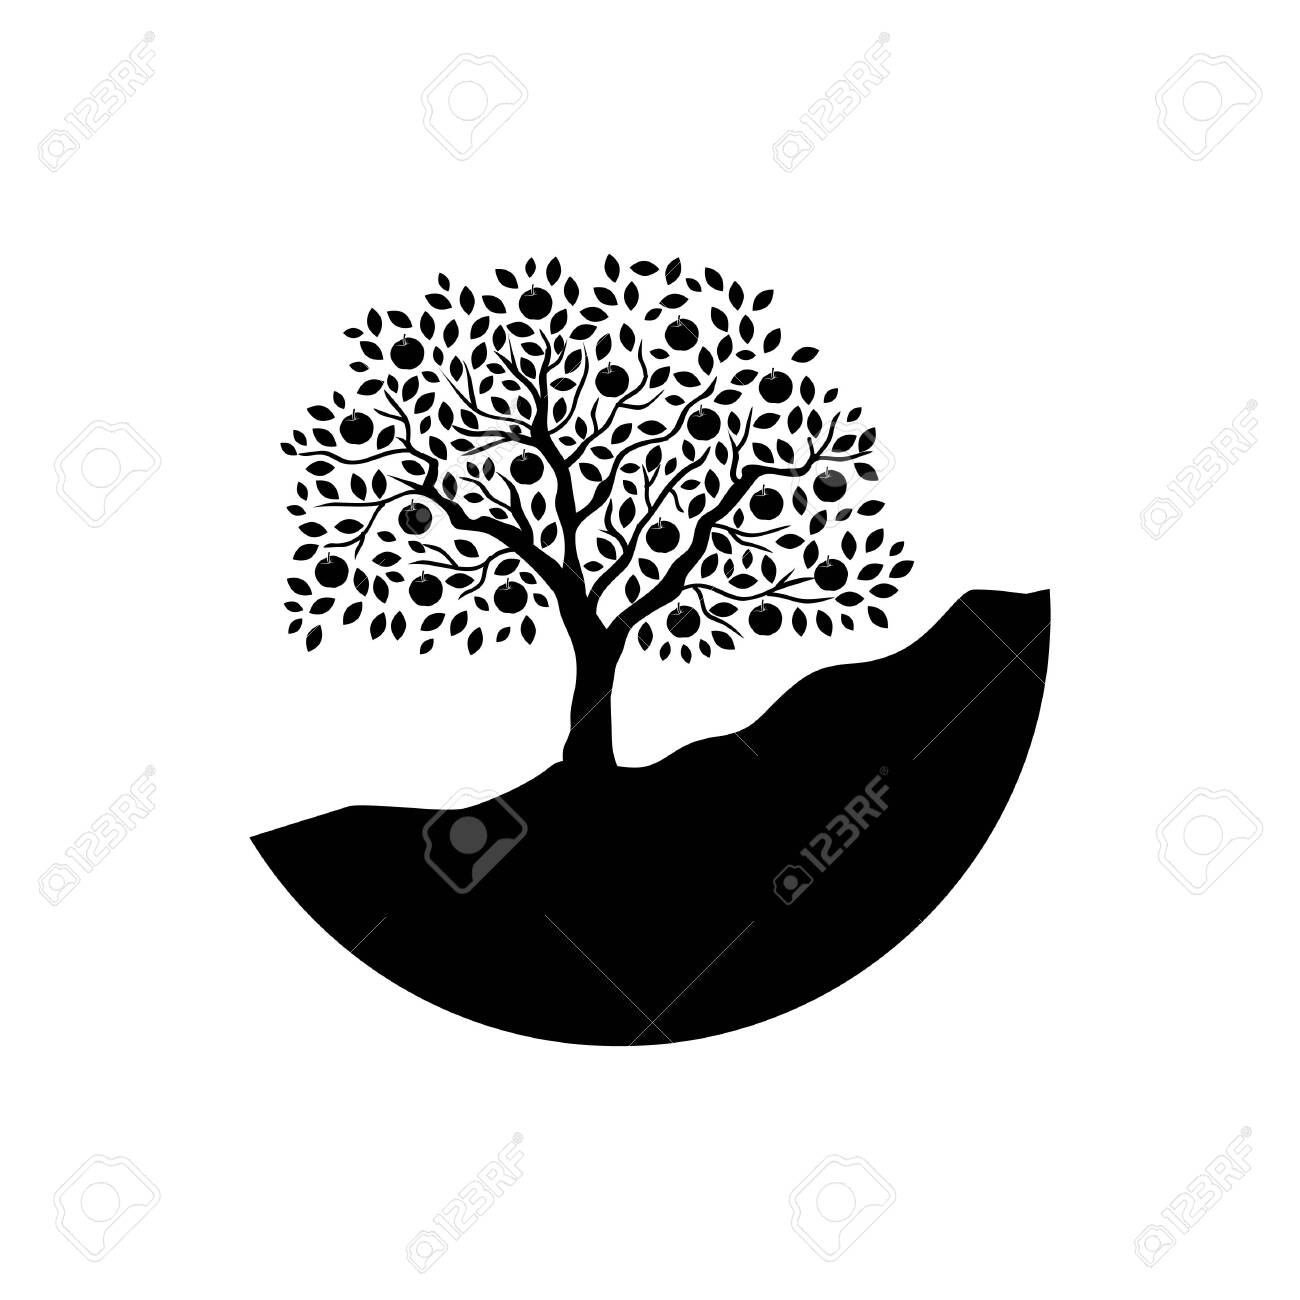 Apple Tree Logo Icon Royalty Free Cliparts Vectors And Stock Illustration Image 136277725